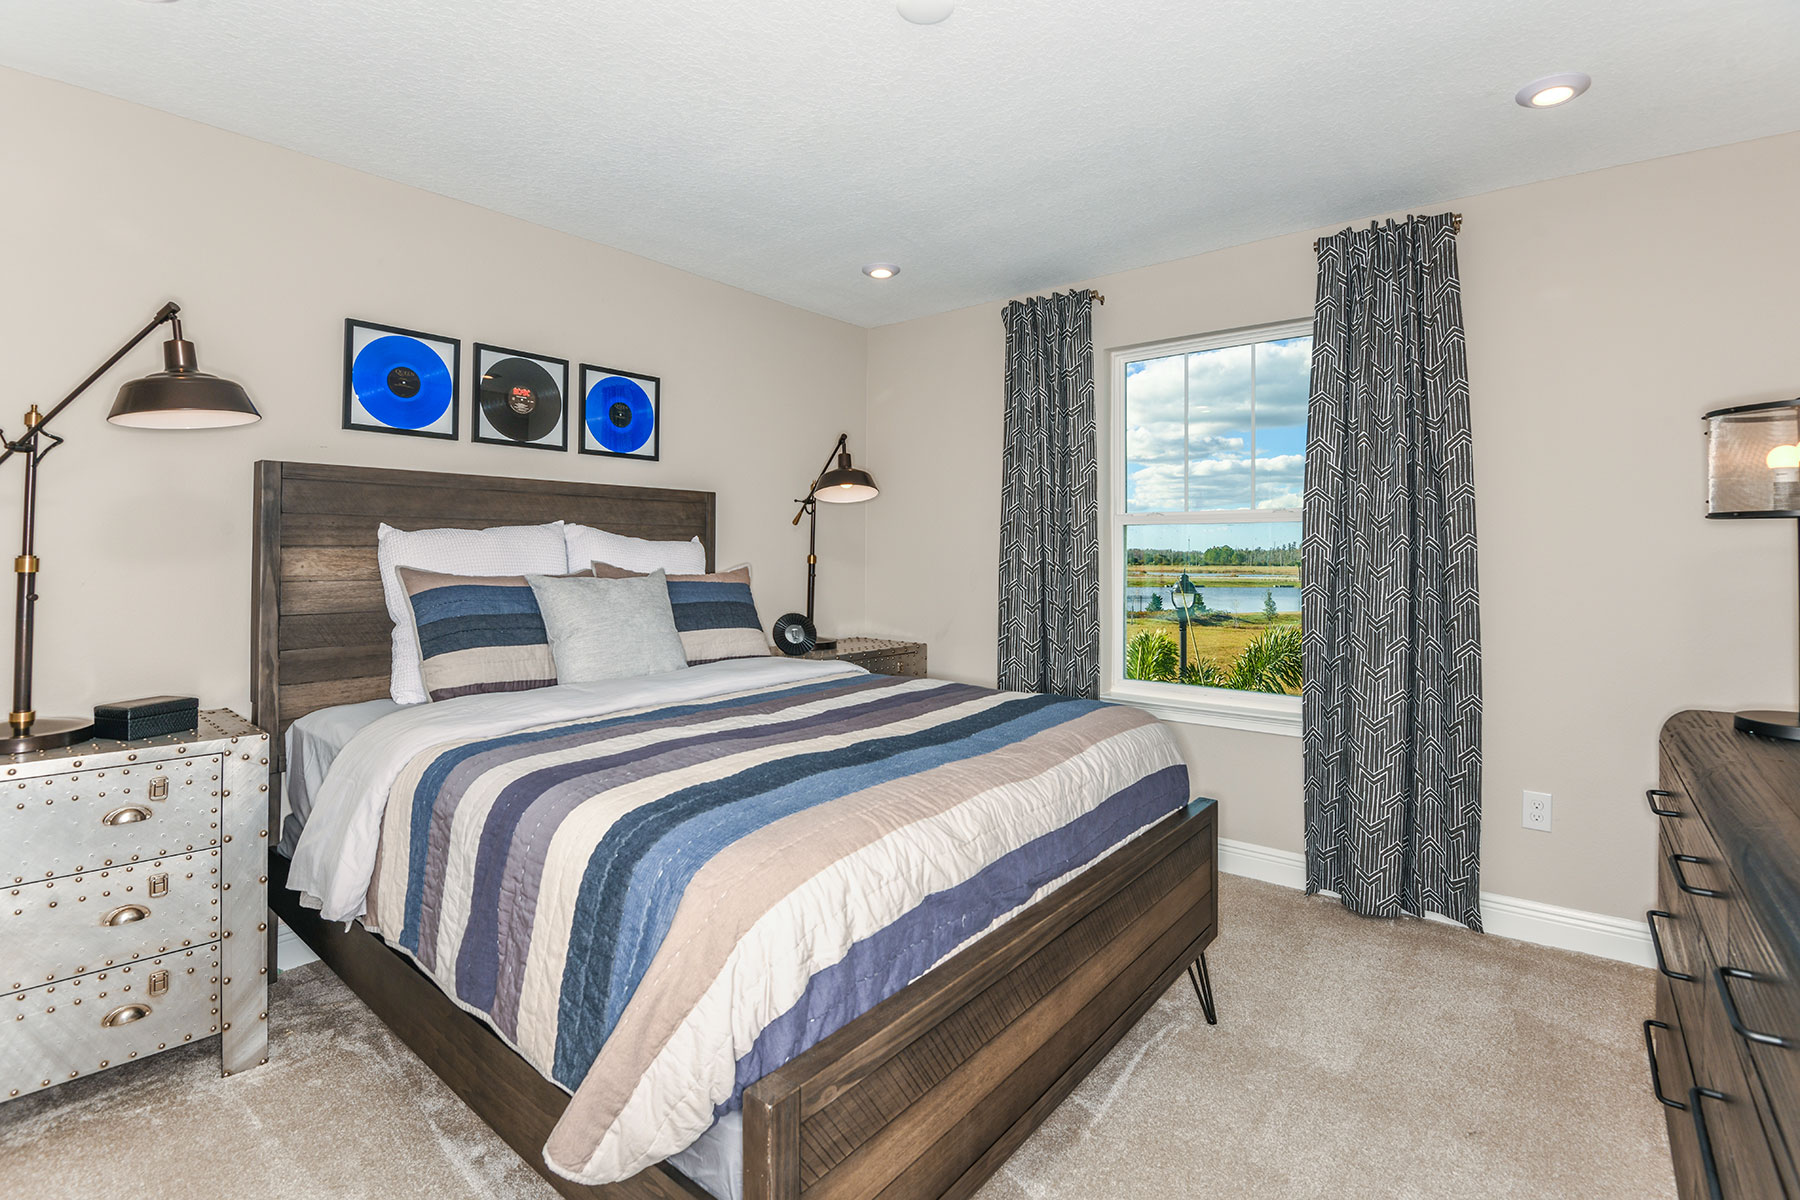 Myrtle Plan Bedroom at Parkview at Long Lake Ranch in Lutz Florida by Mattamy Homes